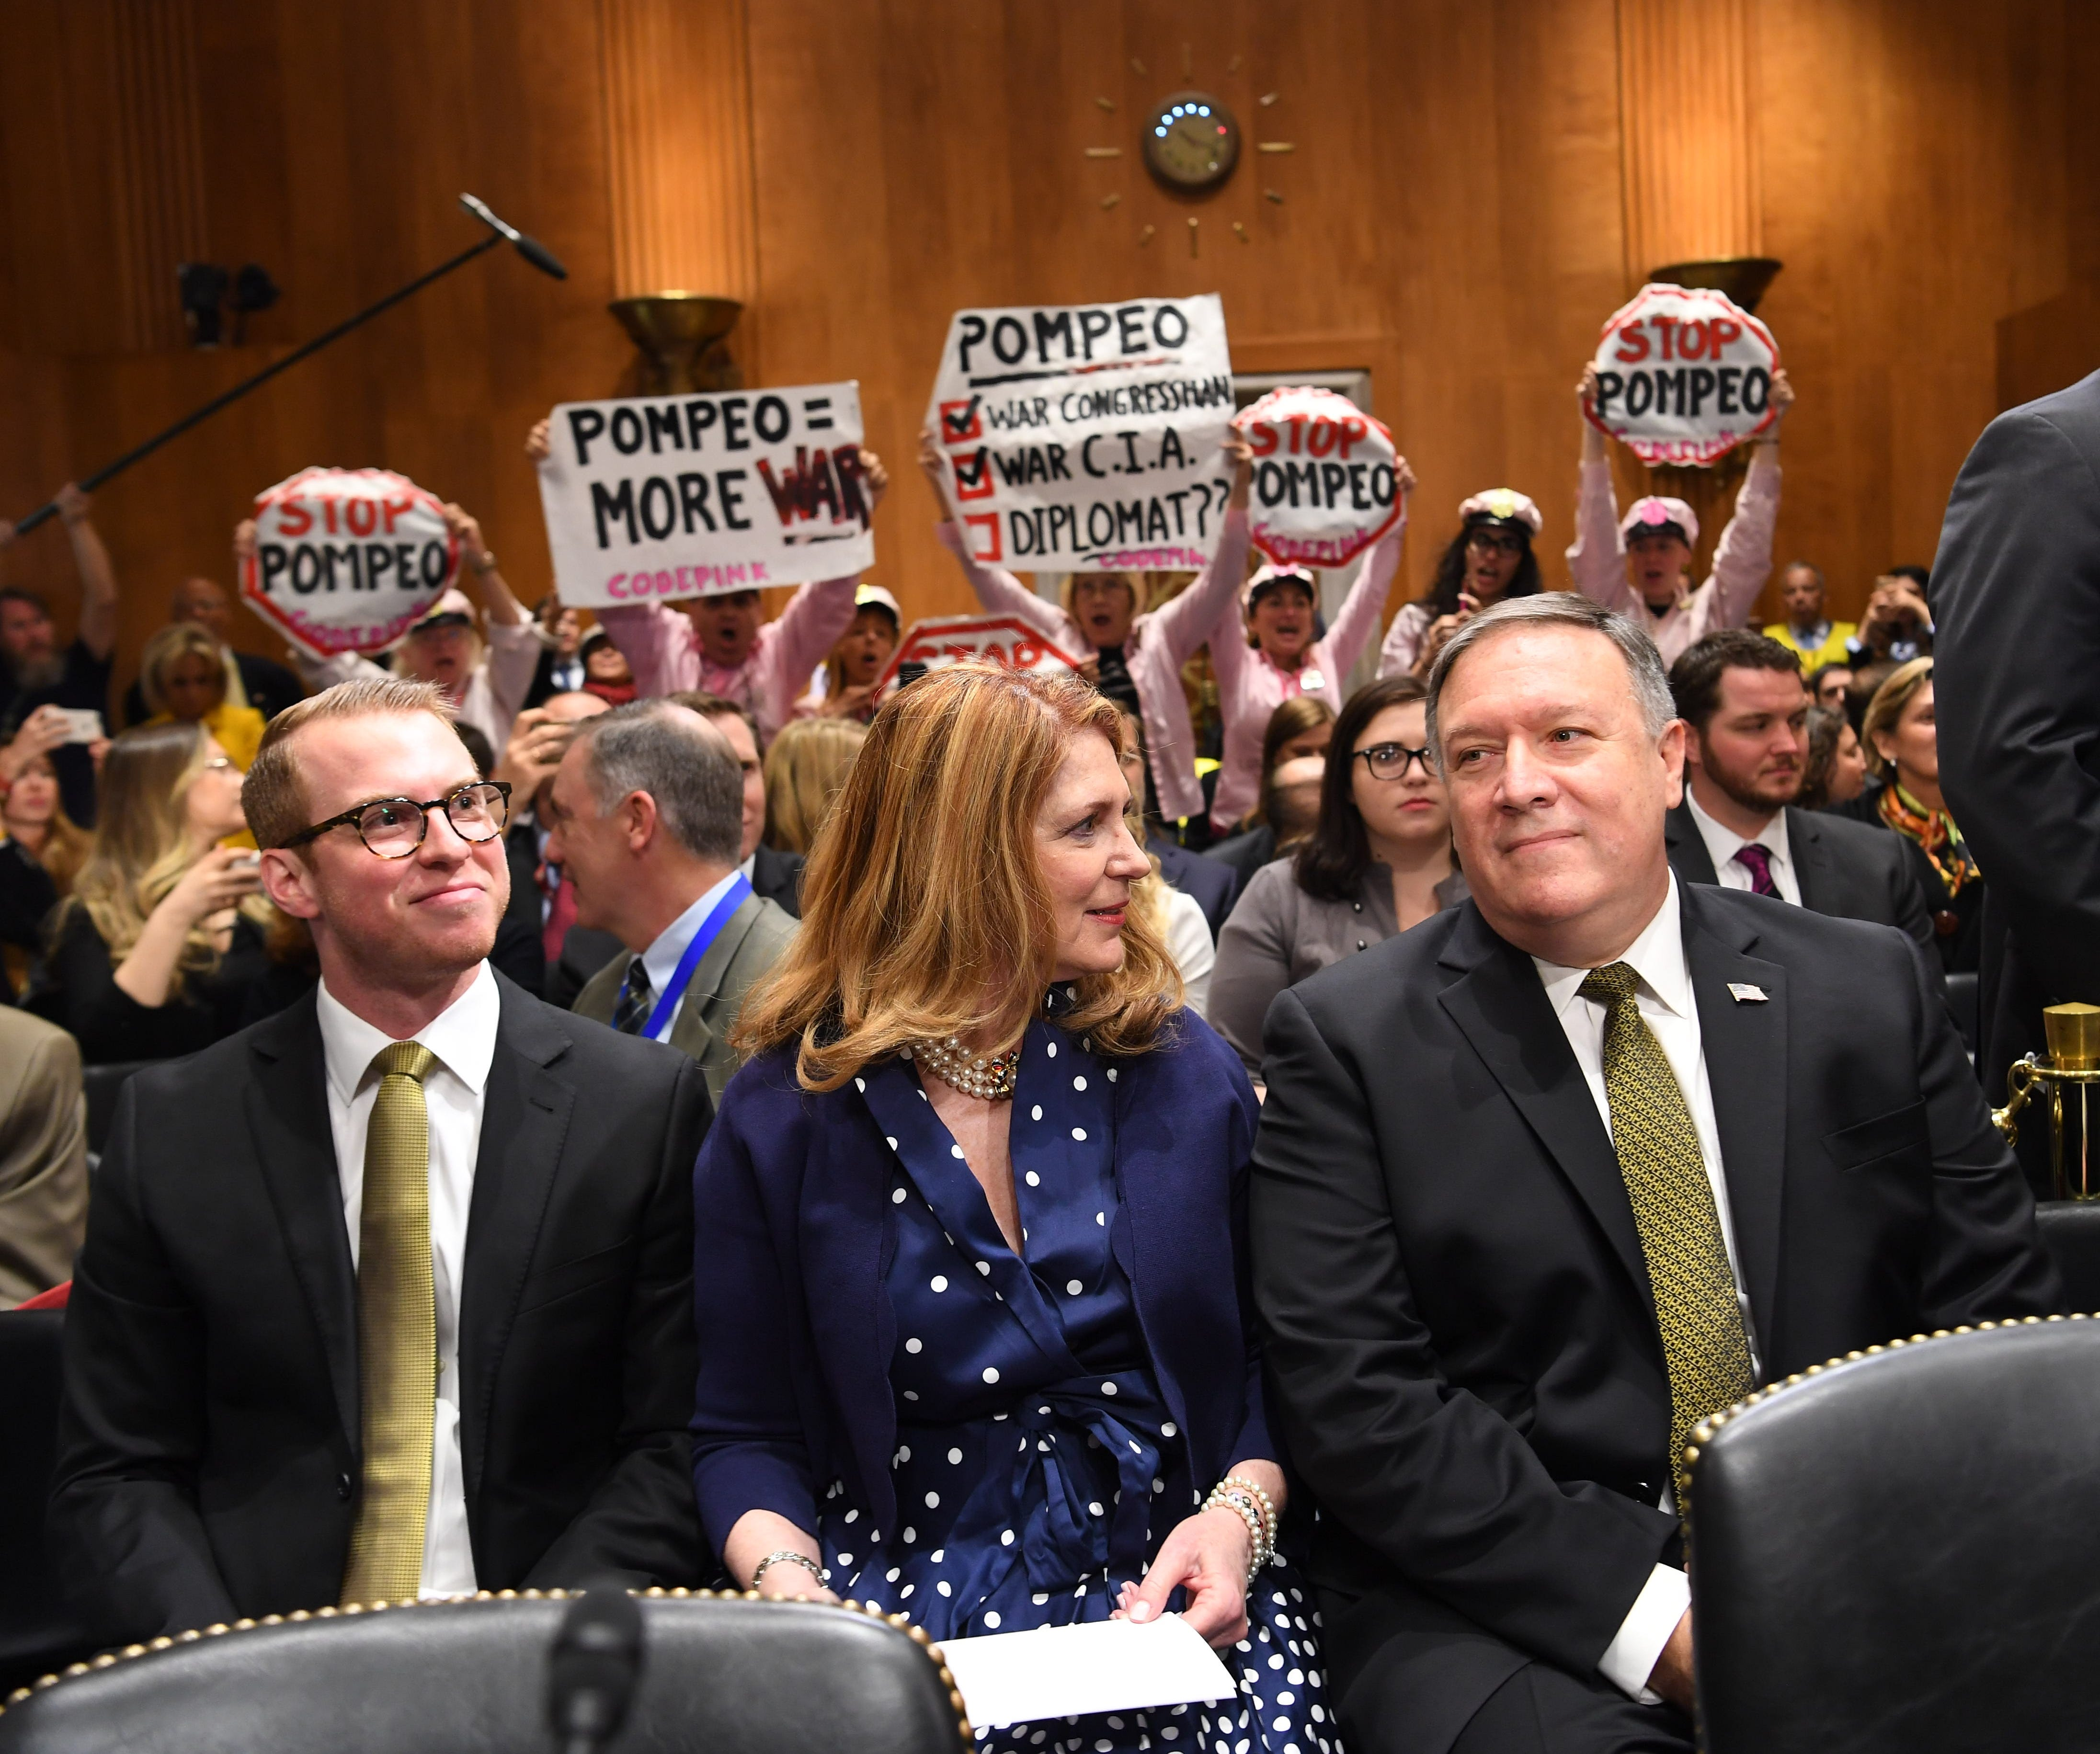 Protestors hold signs from the CODEPINK grassroots anti-war group in the back of the hearing room while Mike Pompeo (R) sits with his wife Susan Pompeo (C) before his scheduled testimony before the Senate Foreign Relations Committee during his confir